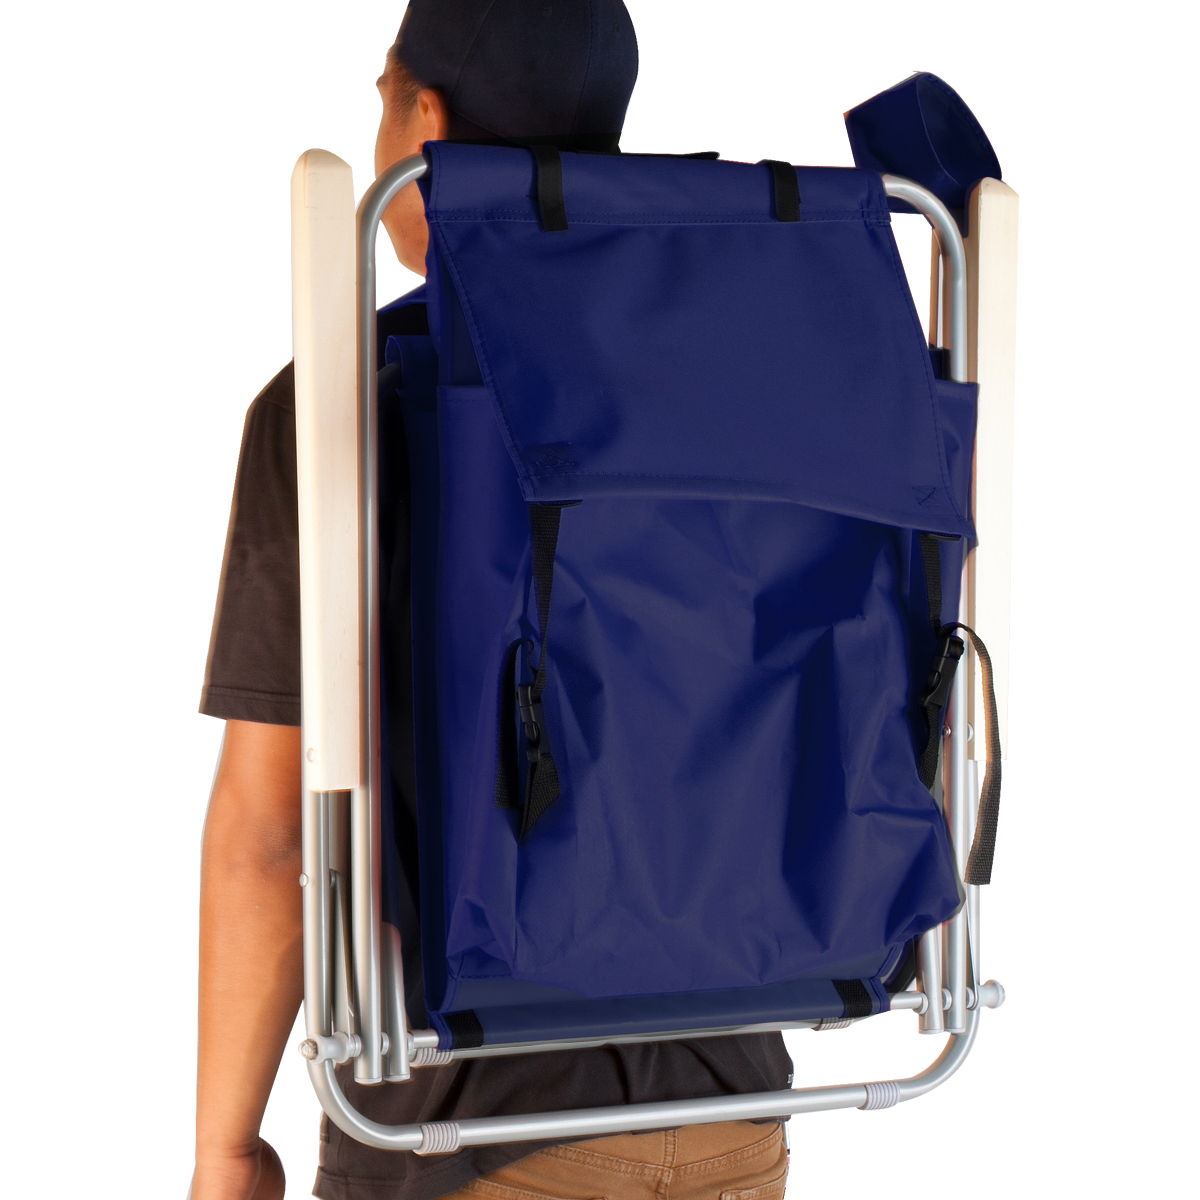 folding chair backpack power wheelchair charger blue beach portable solid